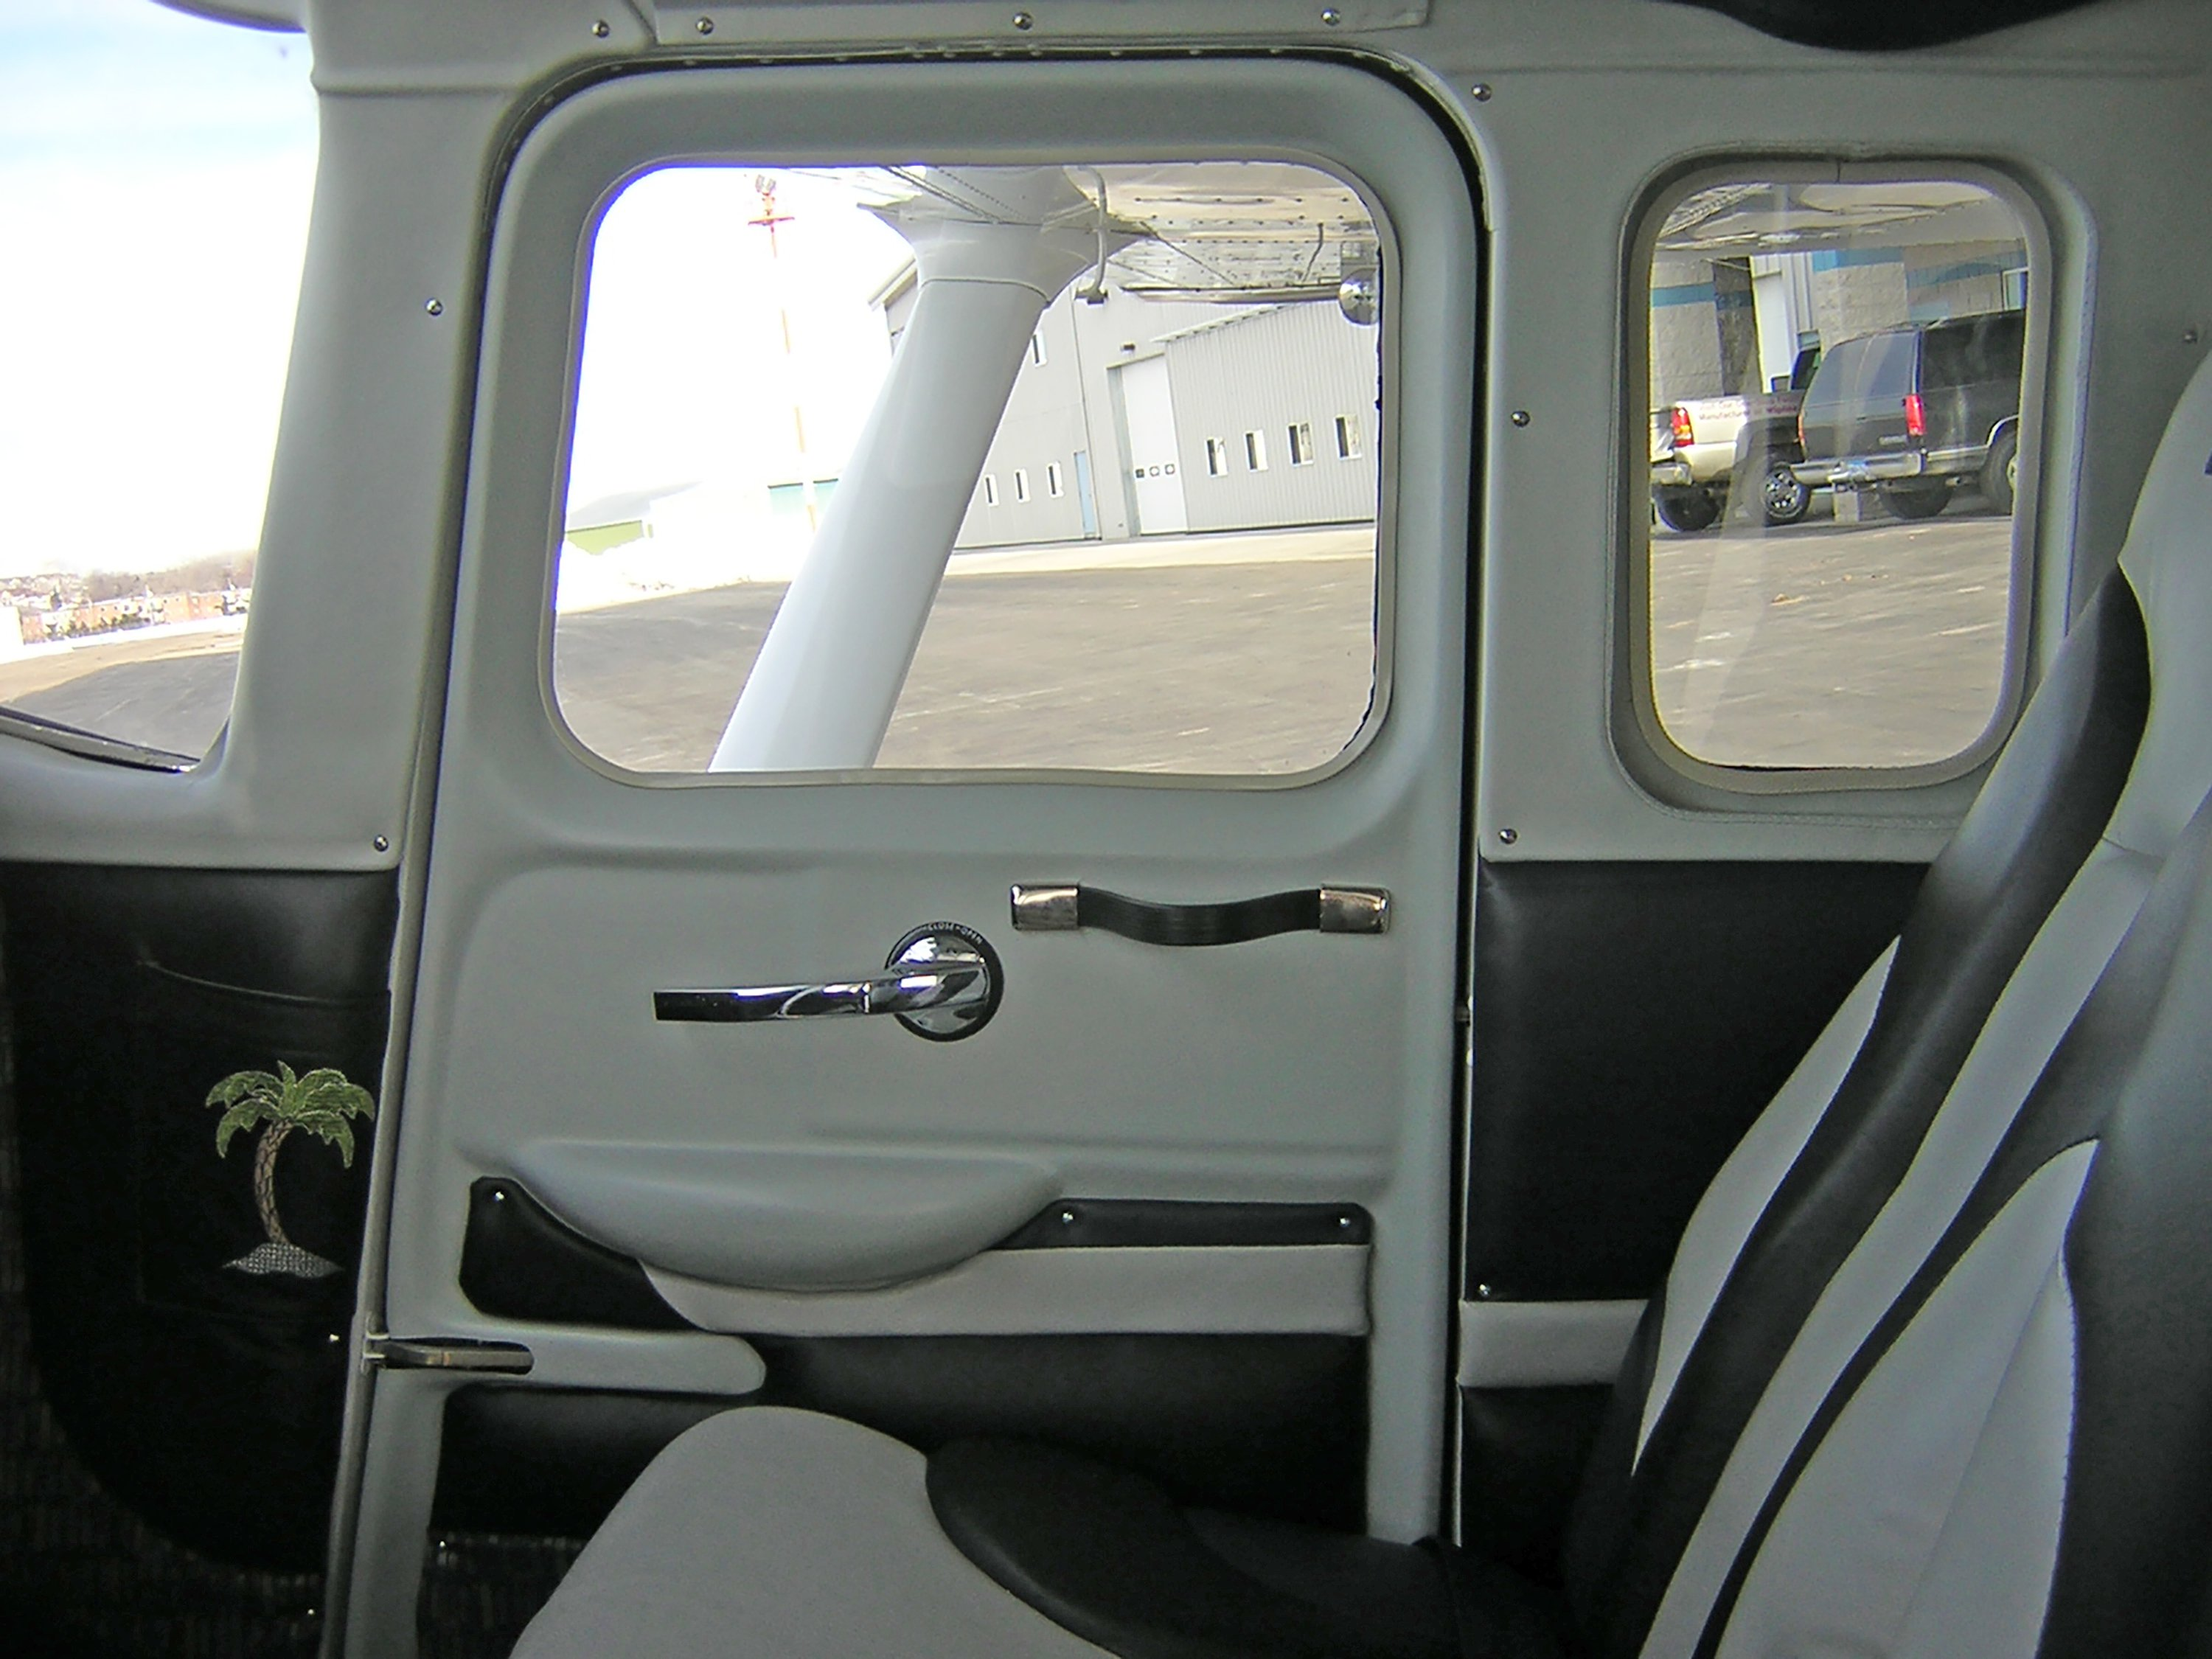 Inside View of a Co-Pilot Door